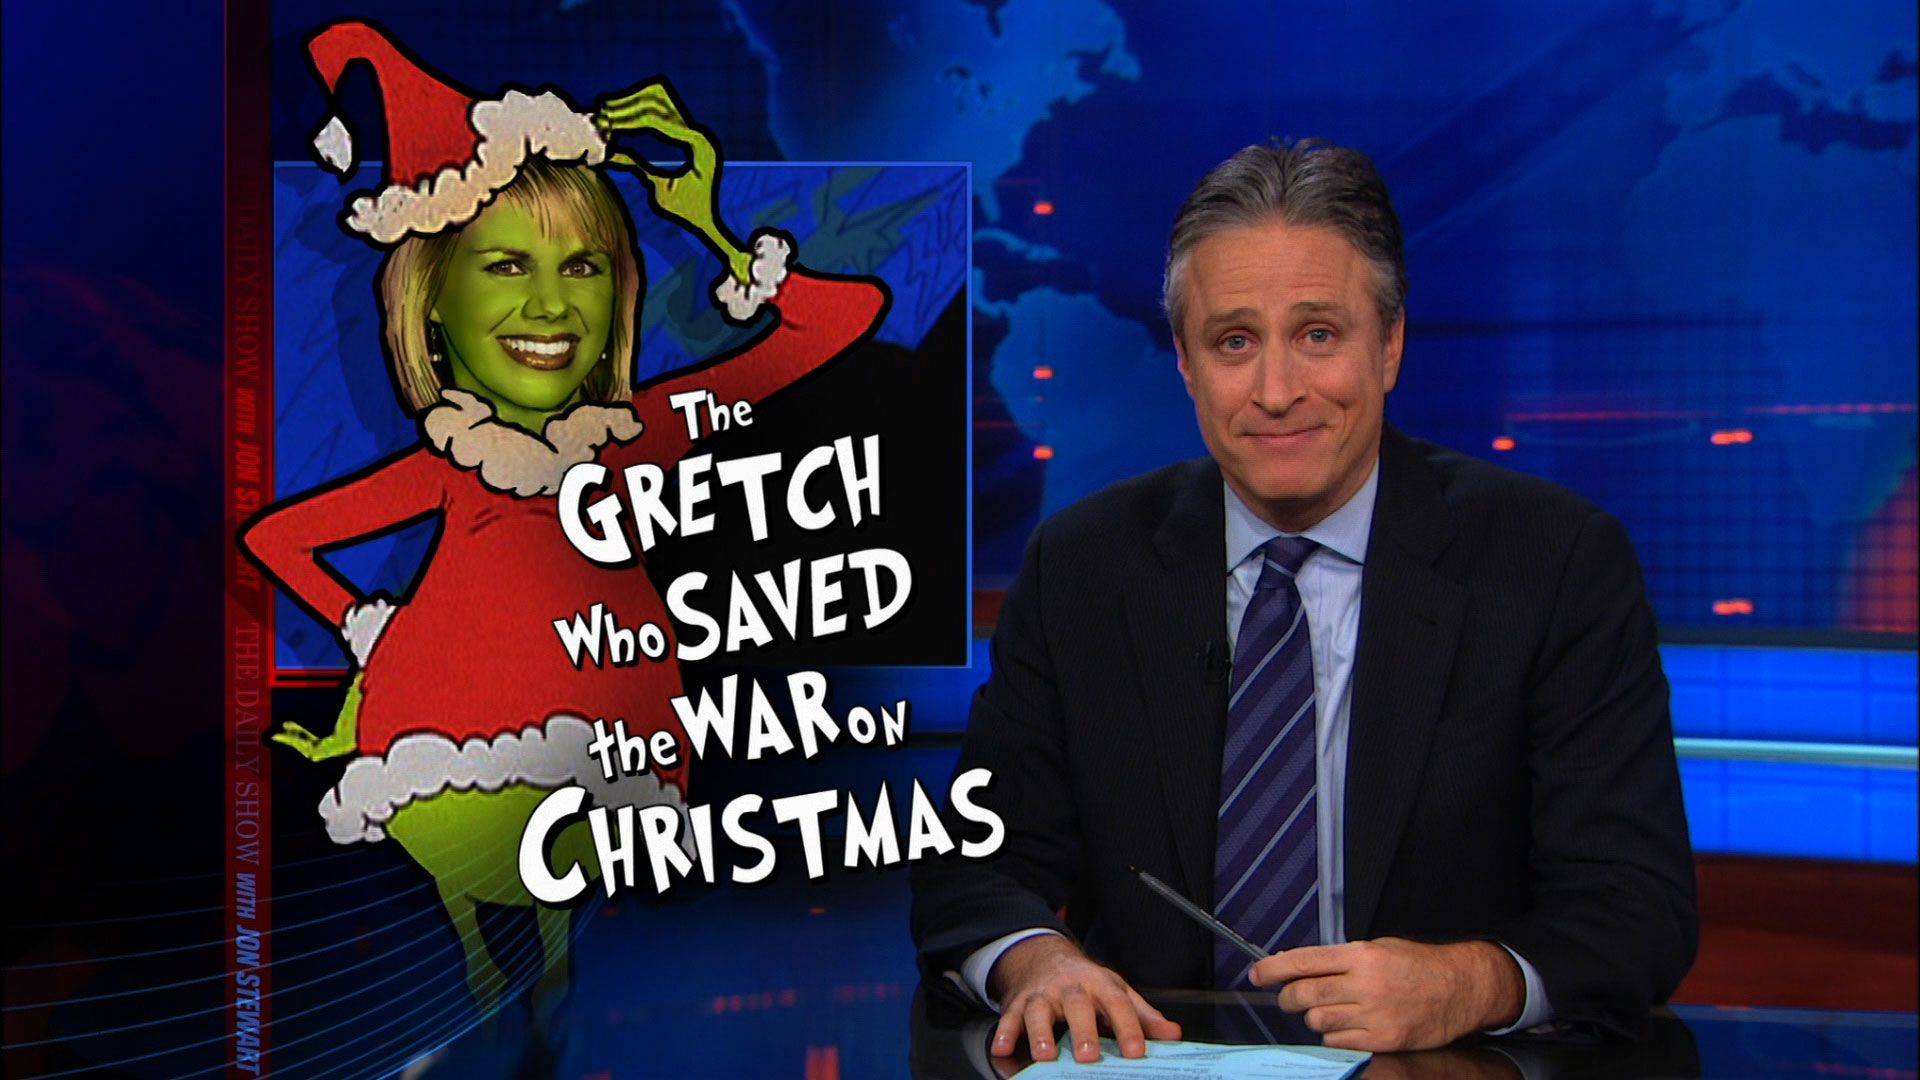 The Gretch Who Saved the War on Christmas - The Daily Show with Jon ...